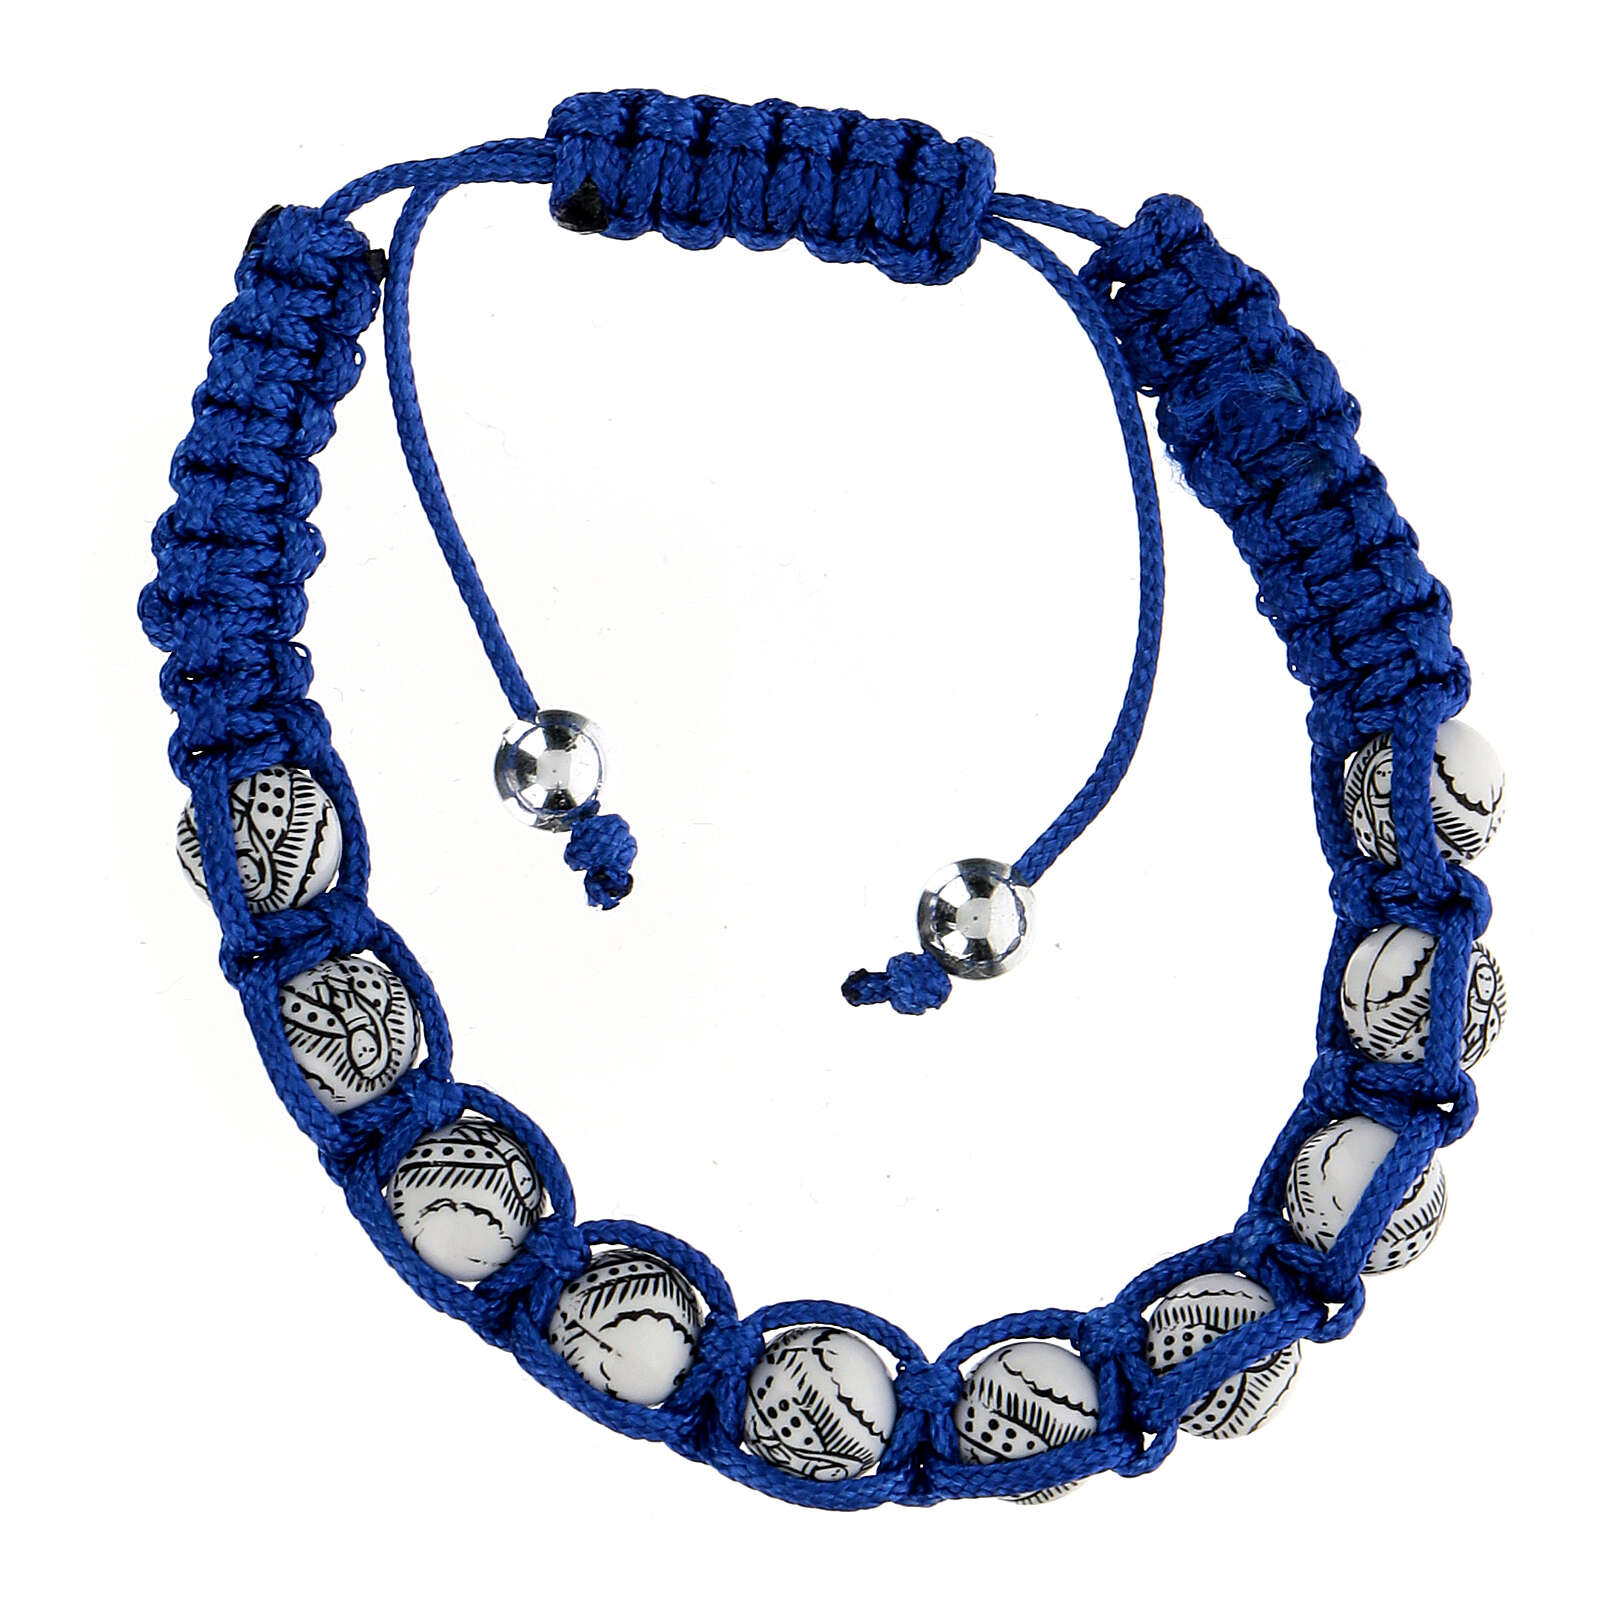 Decade rosary bracelet, Virgin of Guadalupe blue cord 5 mm 4